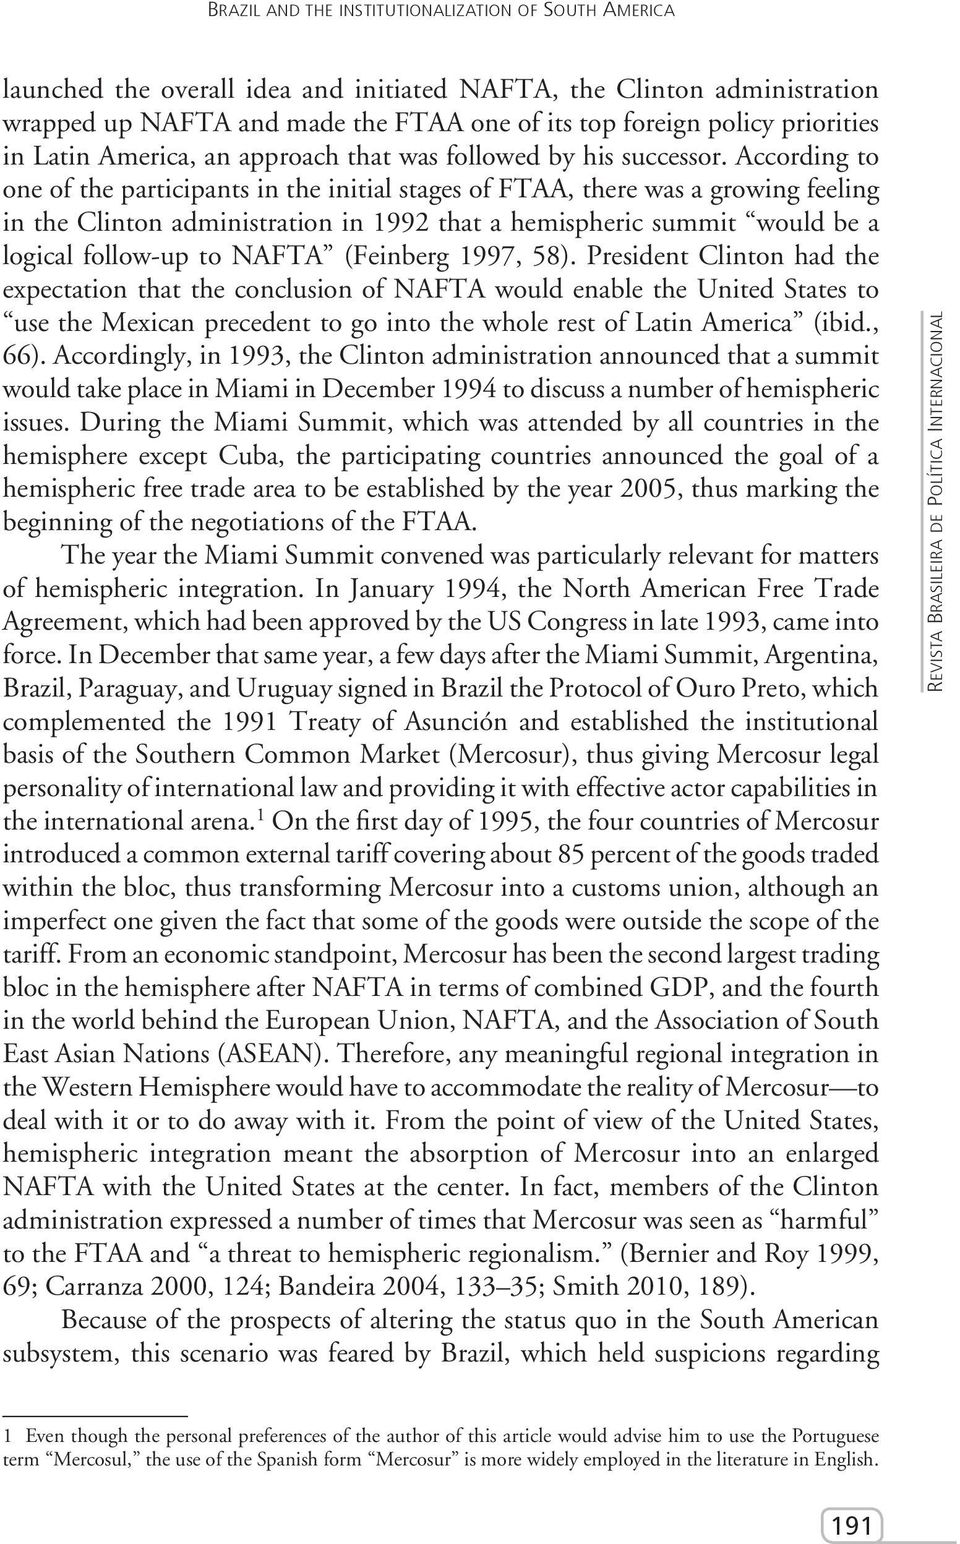 According to one of the participants in the initial stages of FTAA, there was a growing feeling in the Clinton administration in 1992 that a hemispheric summit would be a logical follow-up to NAFTA